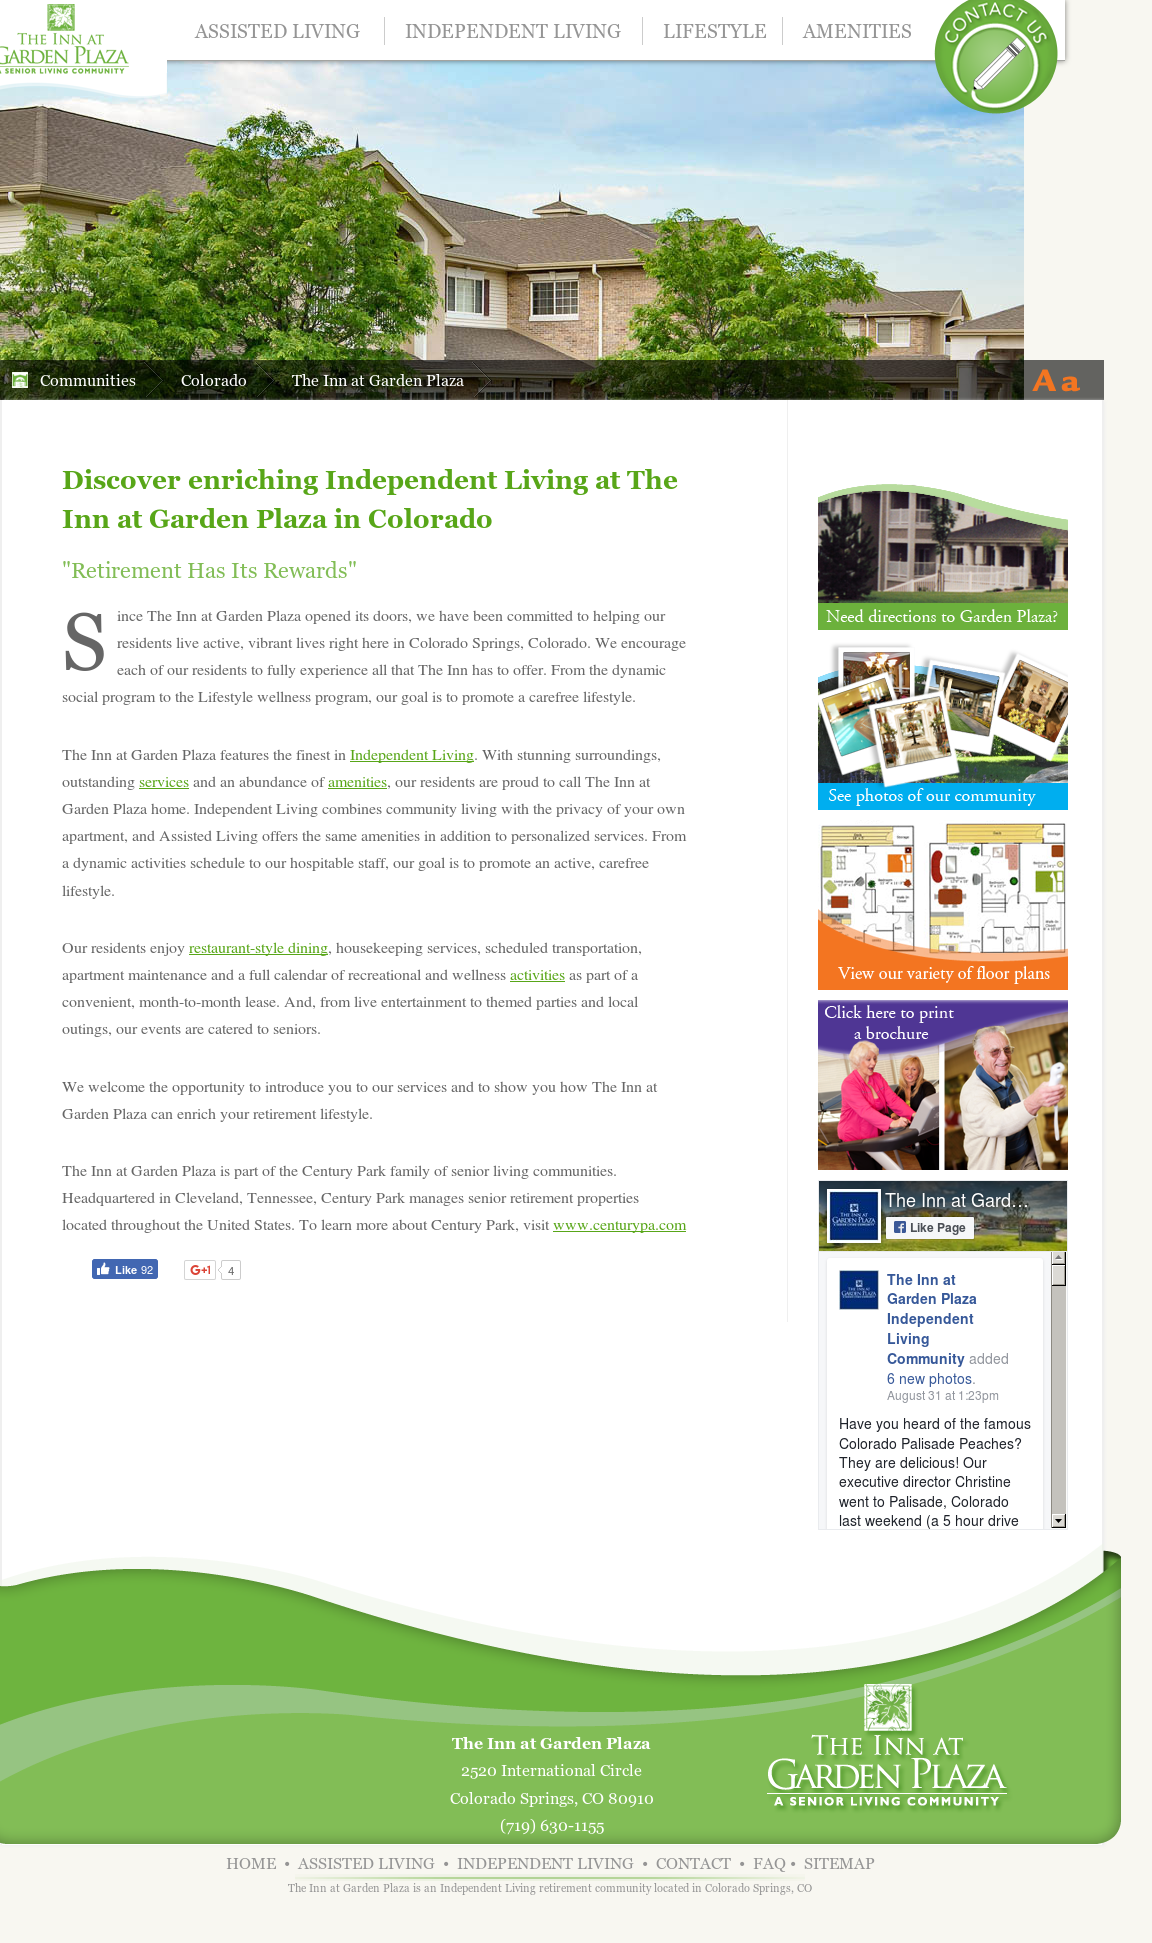 The Inn At Garden Plaza Independent Living Community Website History